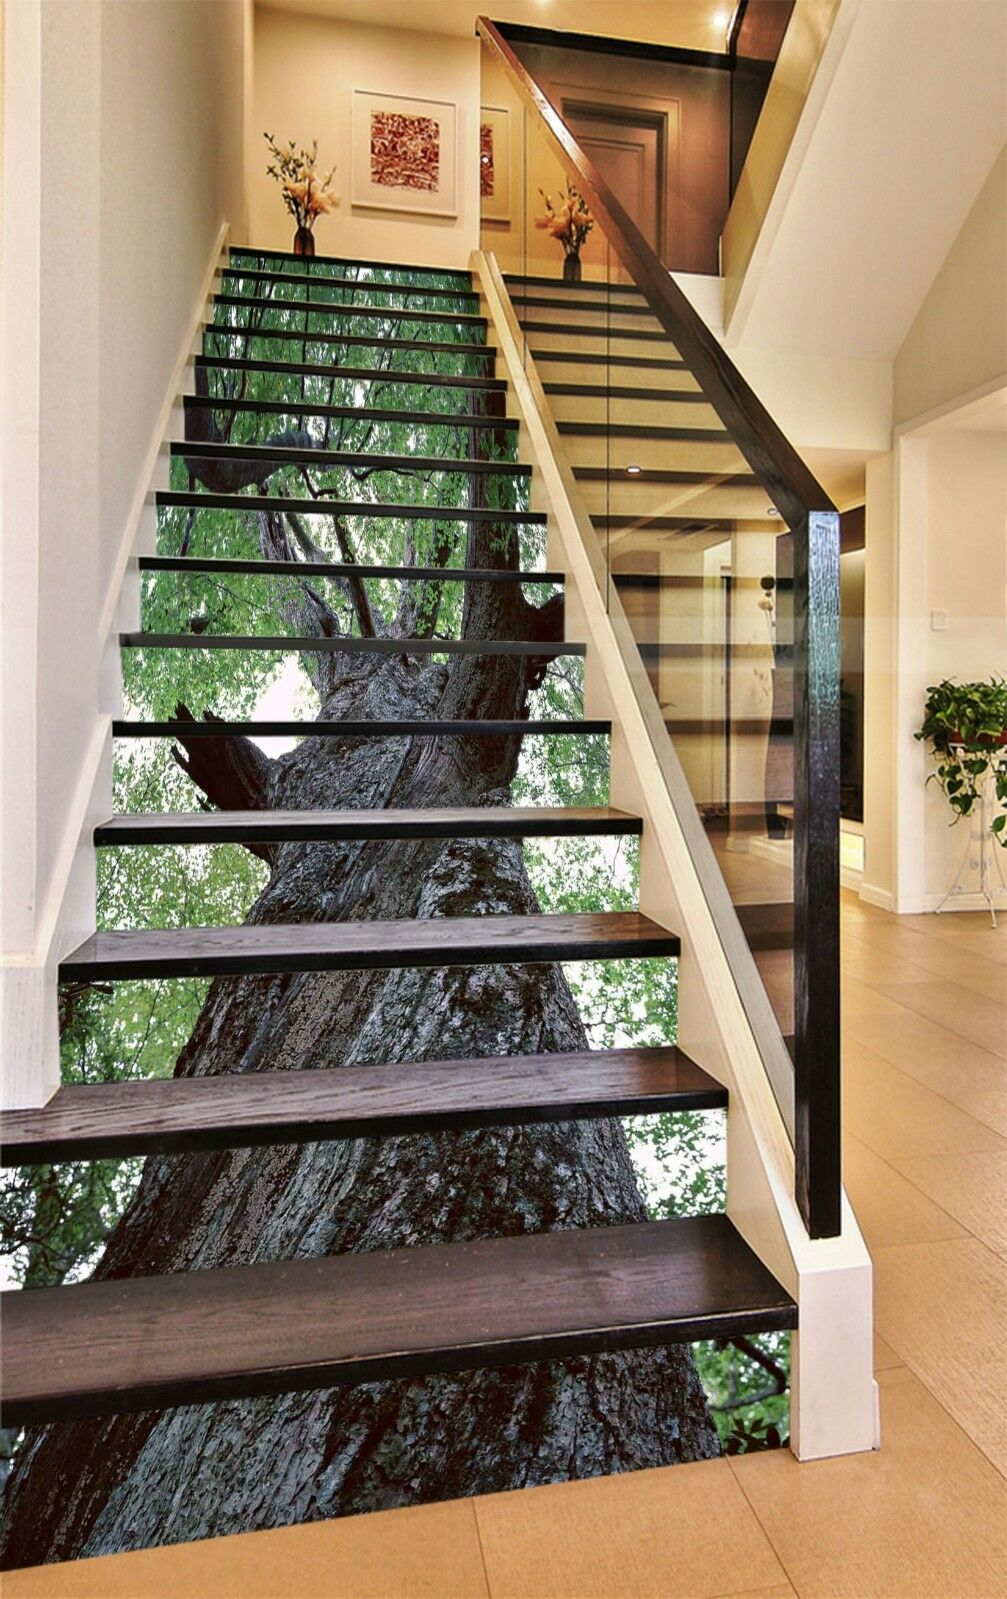 3D Green trees Stair Risers Decoration Photo Mural Vinyl Decal Wallpaper AU